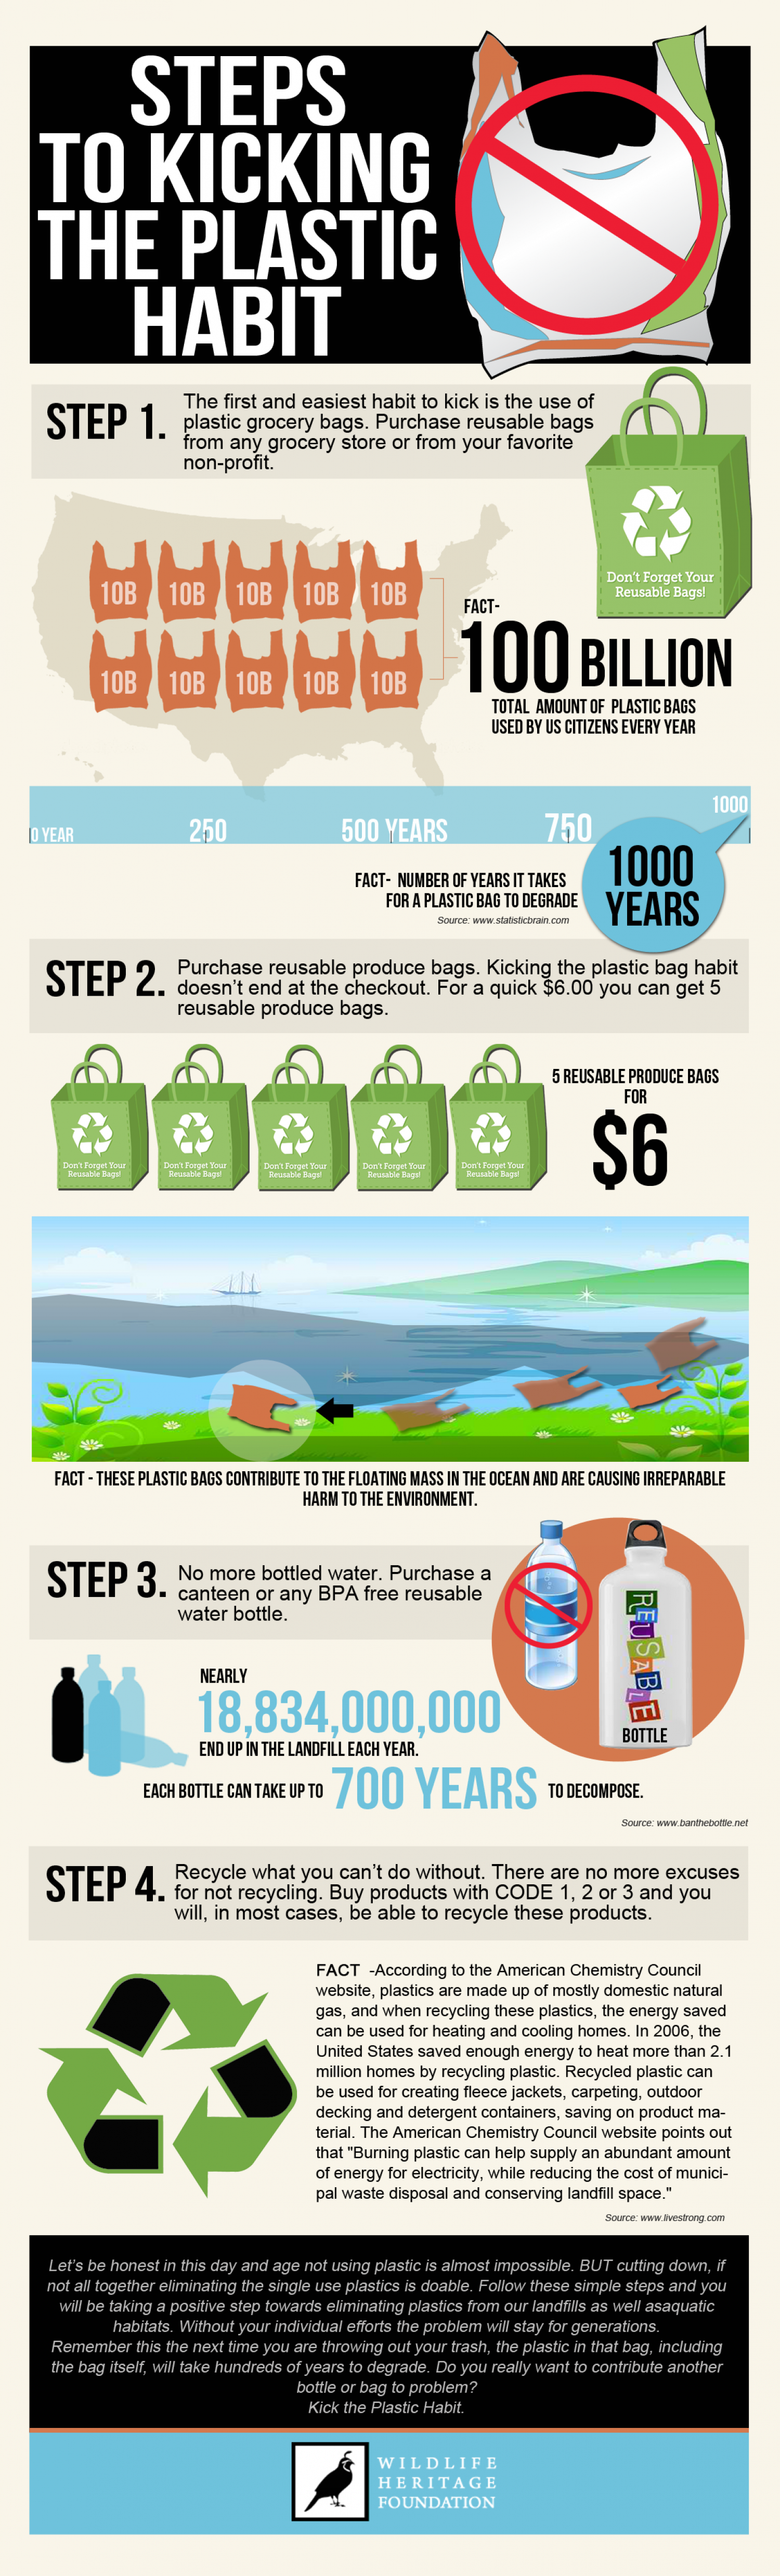 Steps to Kicking the Plastic Habit Infographic